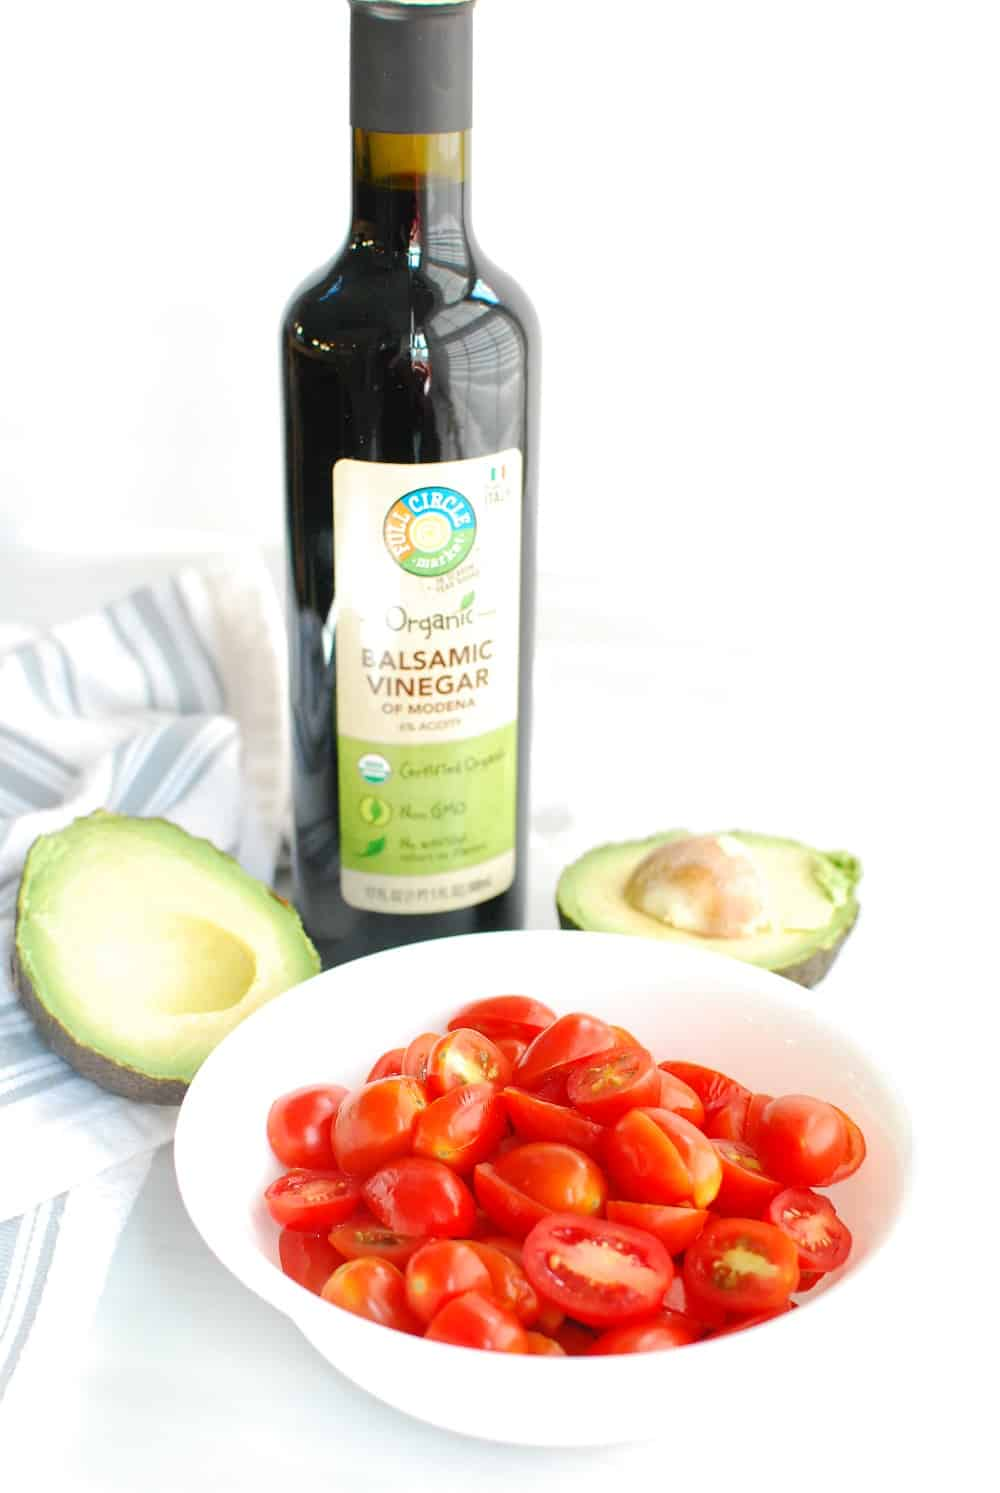 a bottle of balsamic vinegar next to a bowl of cherry tomatoes and a halved avocado